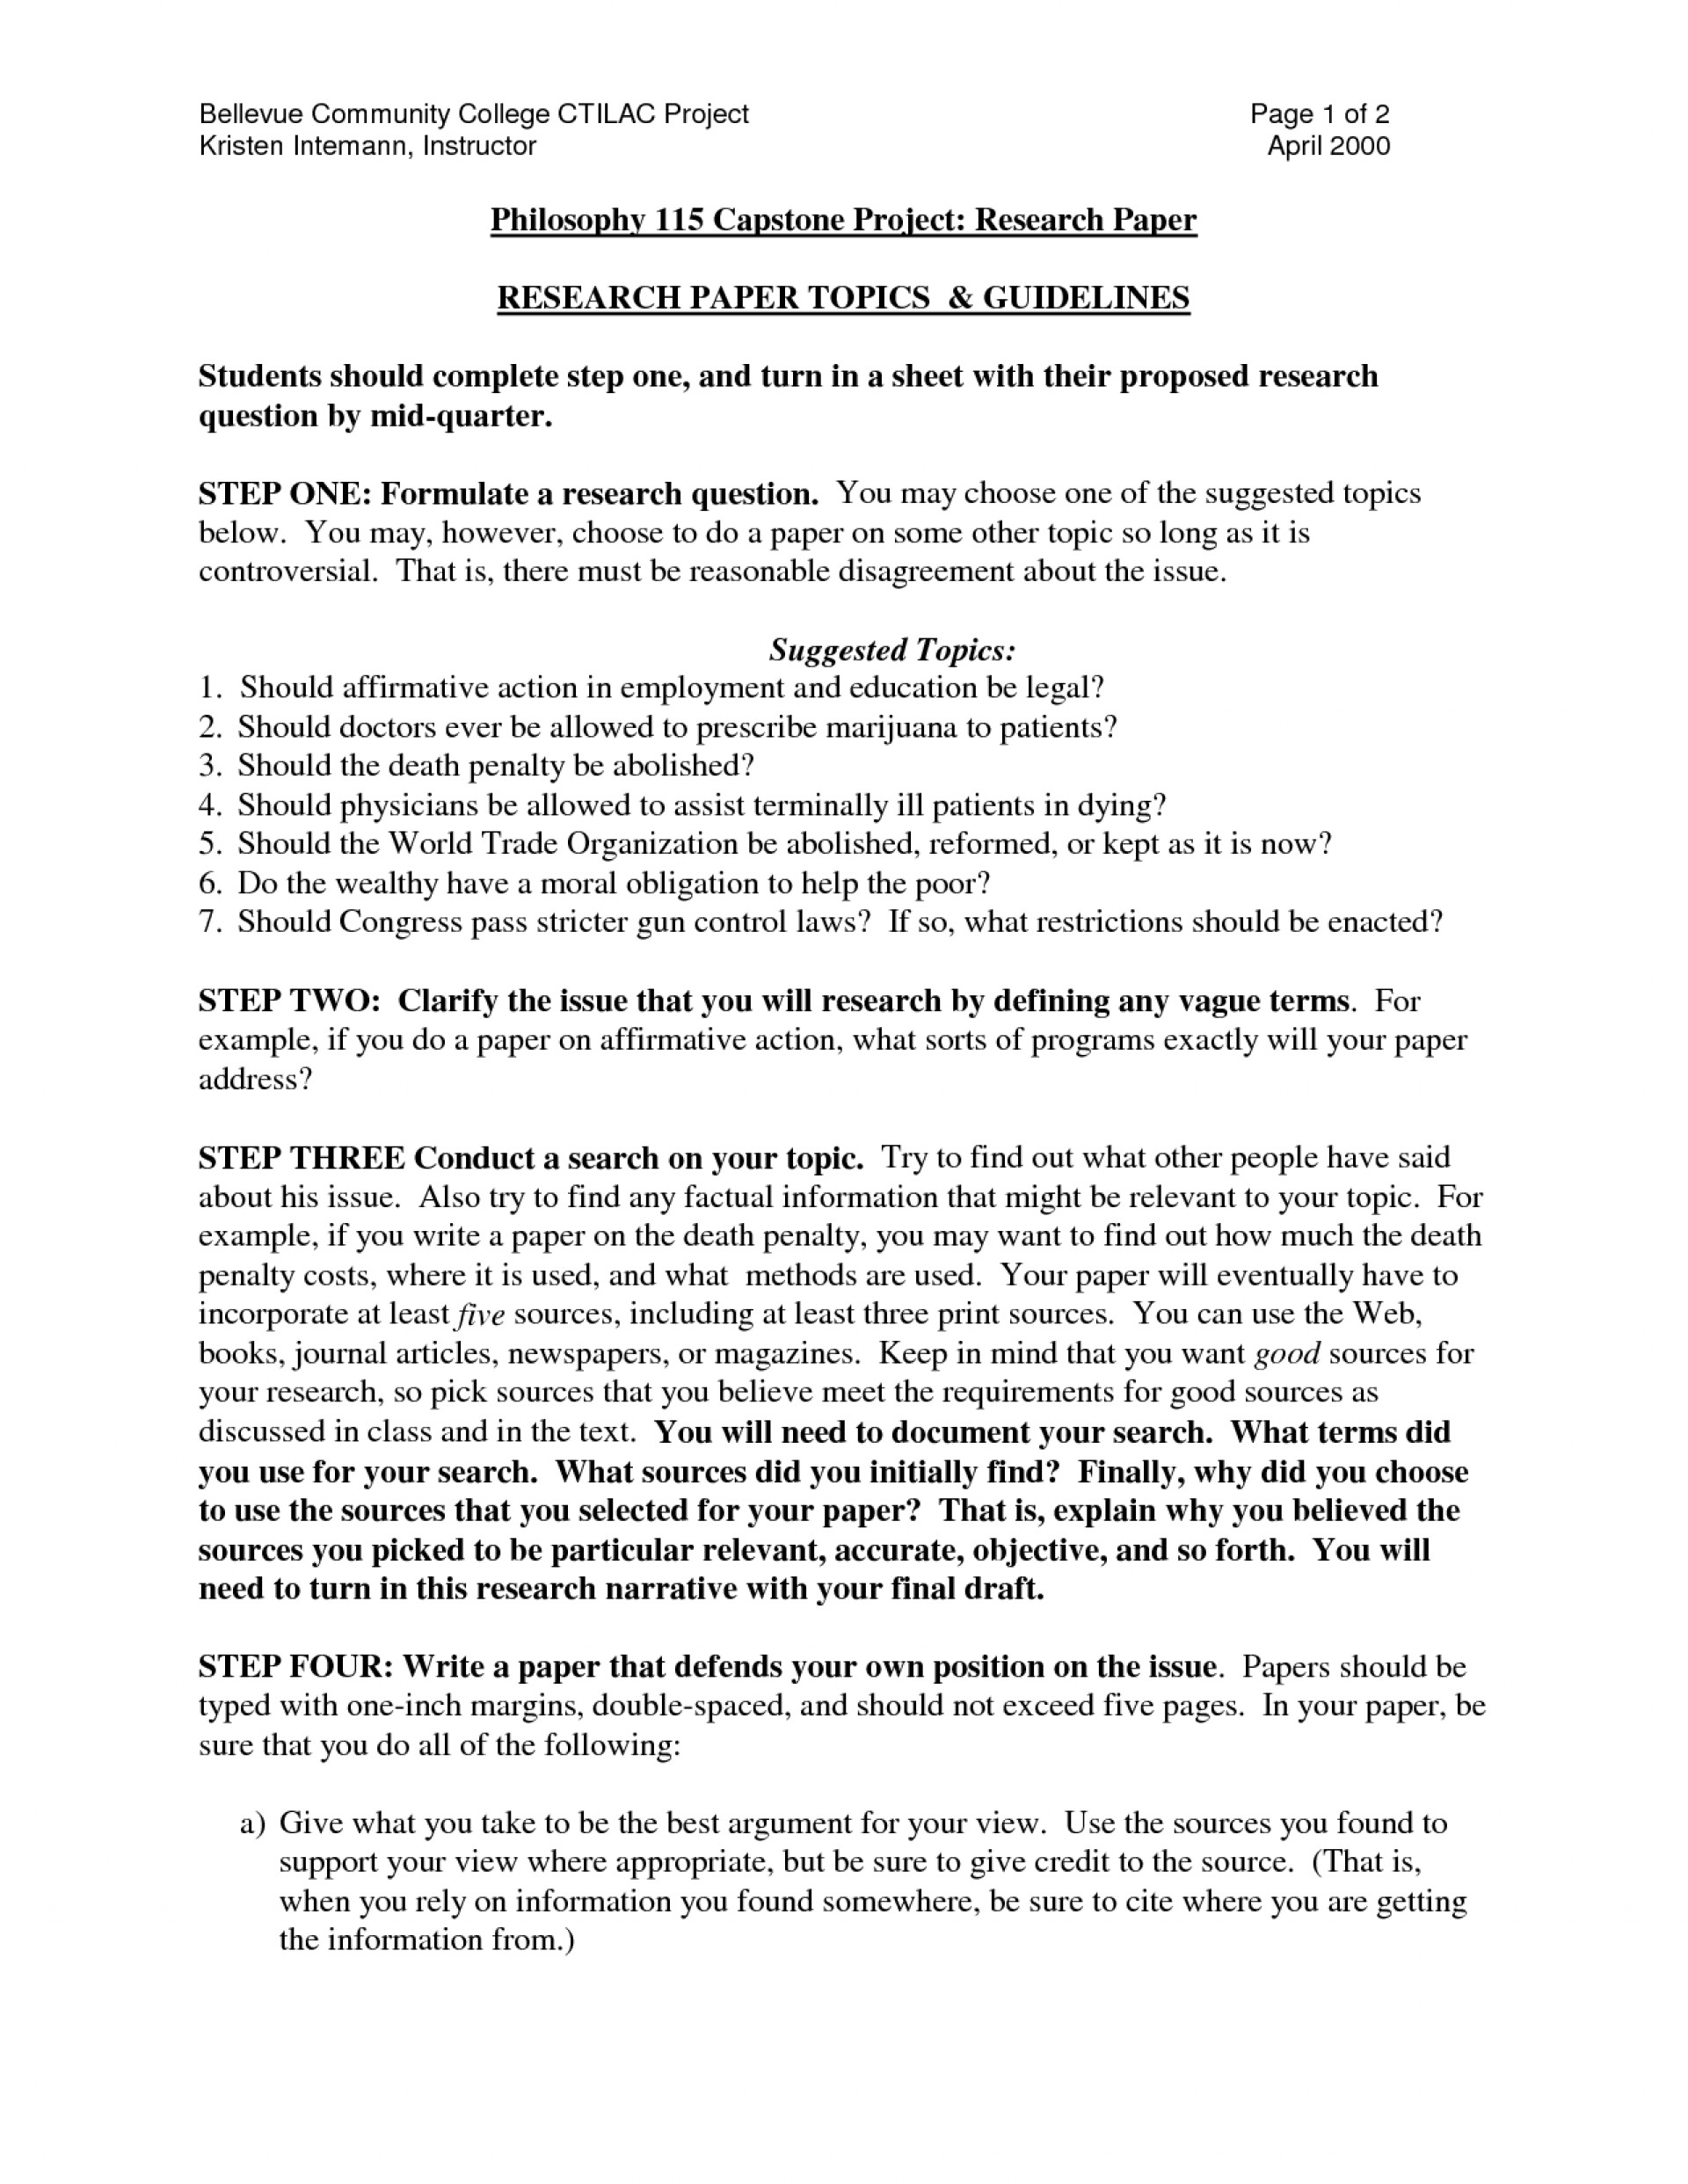 How To Write An Essay For High School Students  Sample High School Essays also Thesis Statement Narrative Essay  How To Write Research Paper Introduction Paragraph  Business Format Essay